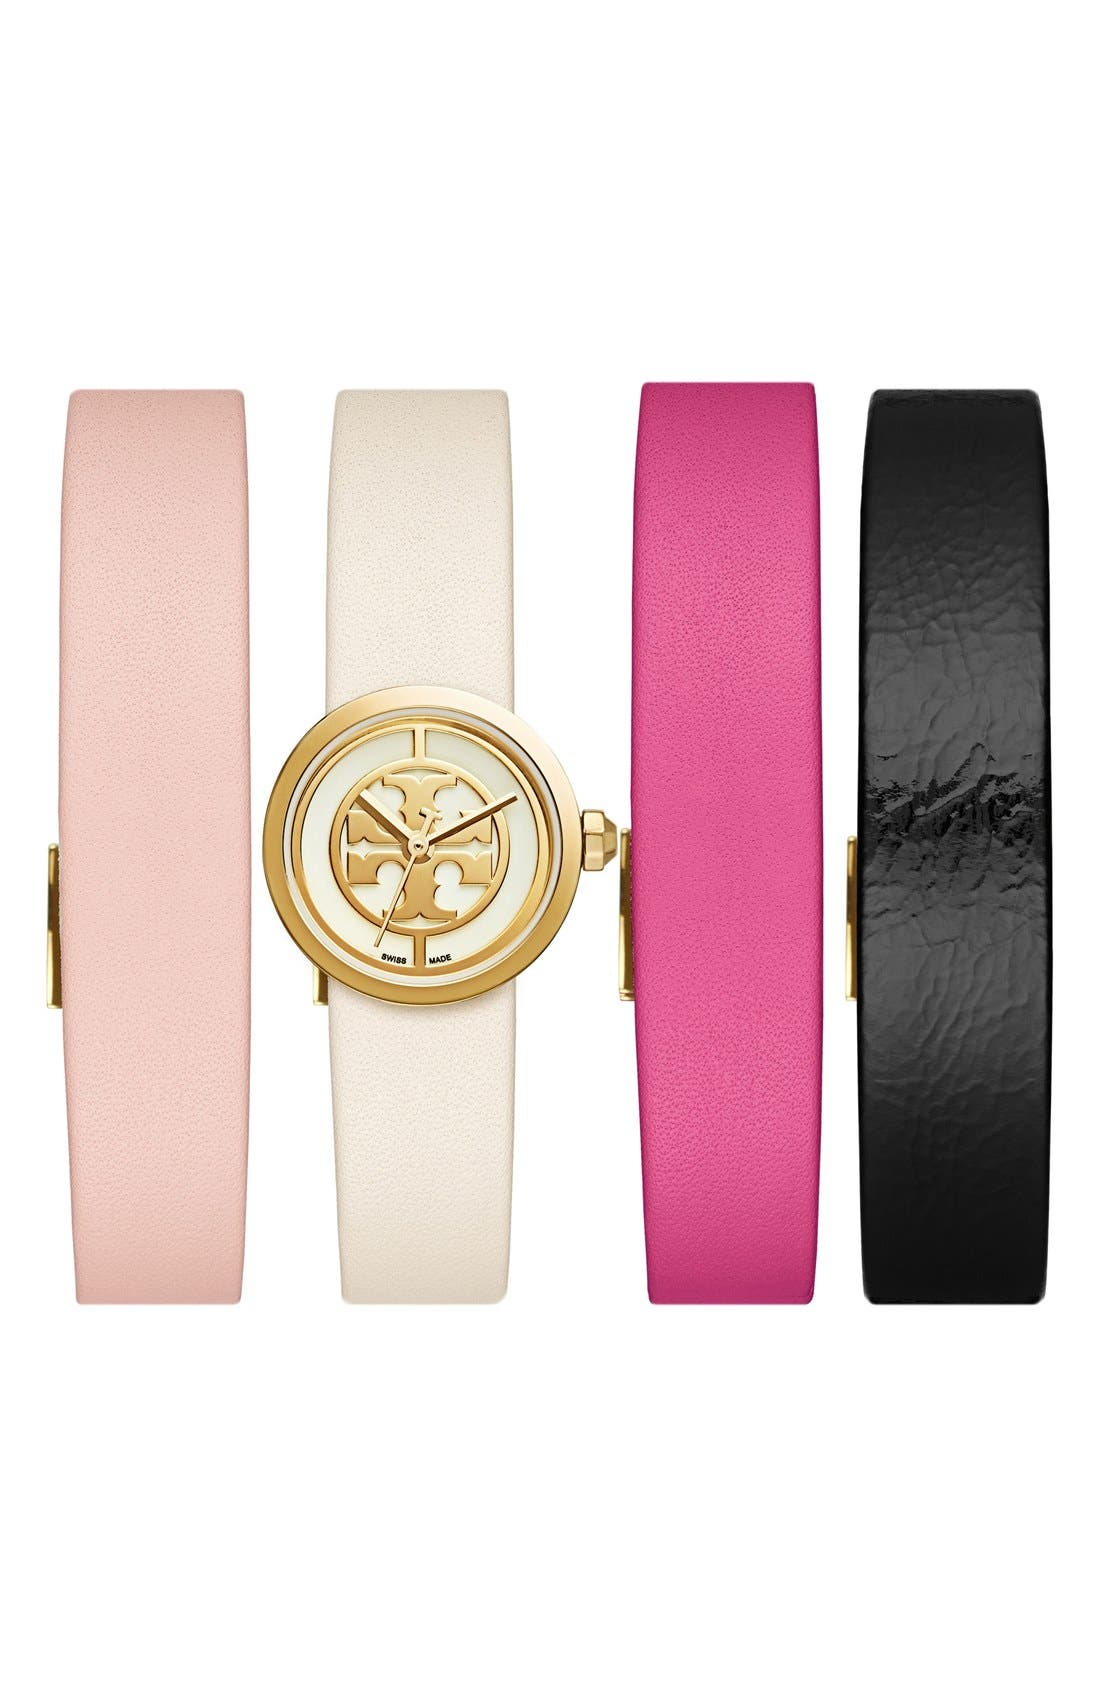 Alternate Image 1 Selected - Tory Burch 'Reva' Leather Strap Watch Set, 20mm